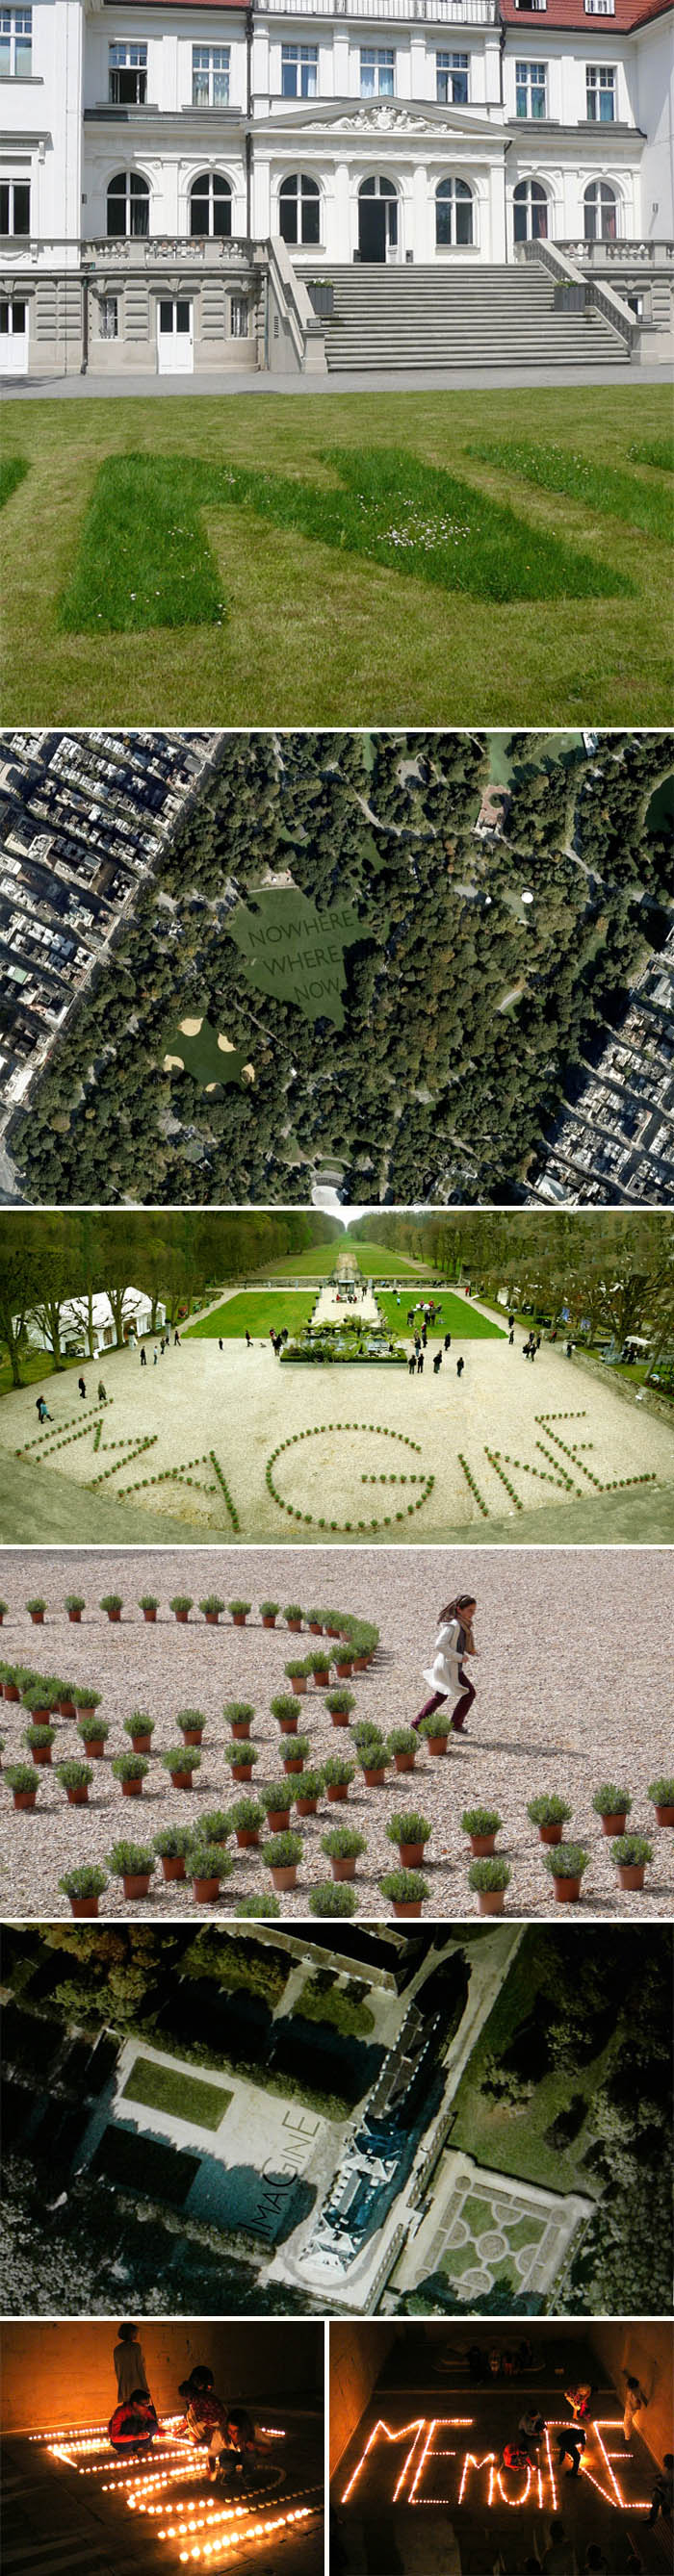 Typography landscapes, wordplay in grass, Imagine, Memoire, French art, Jean Daviot, type installation